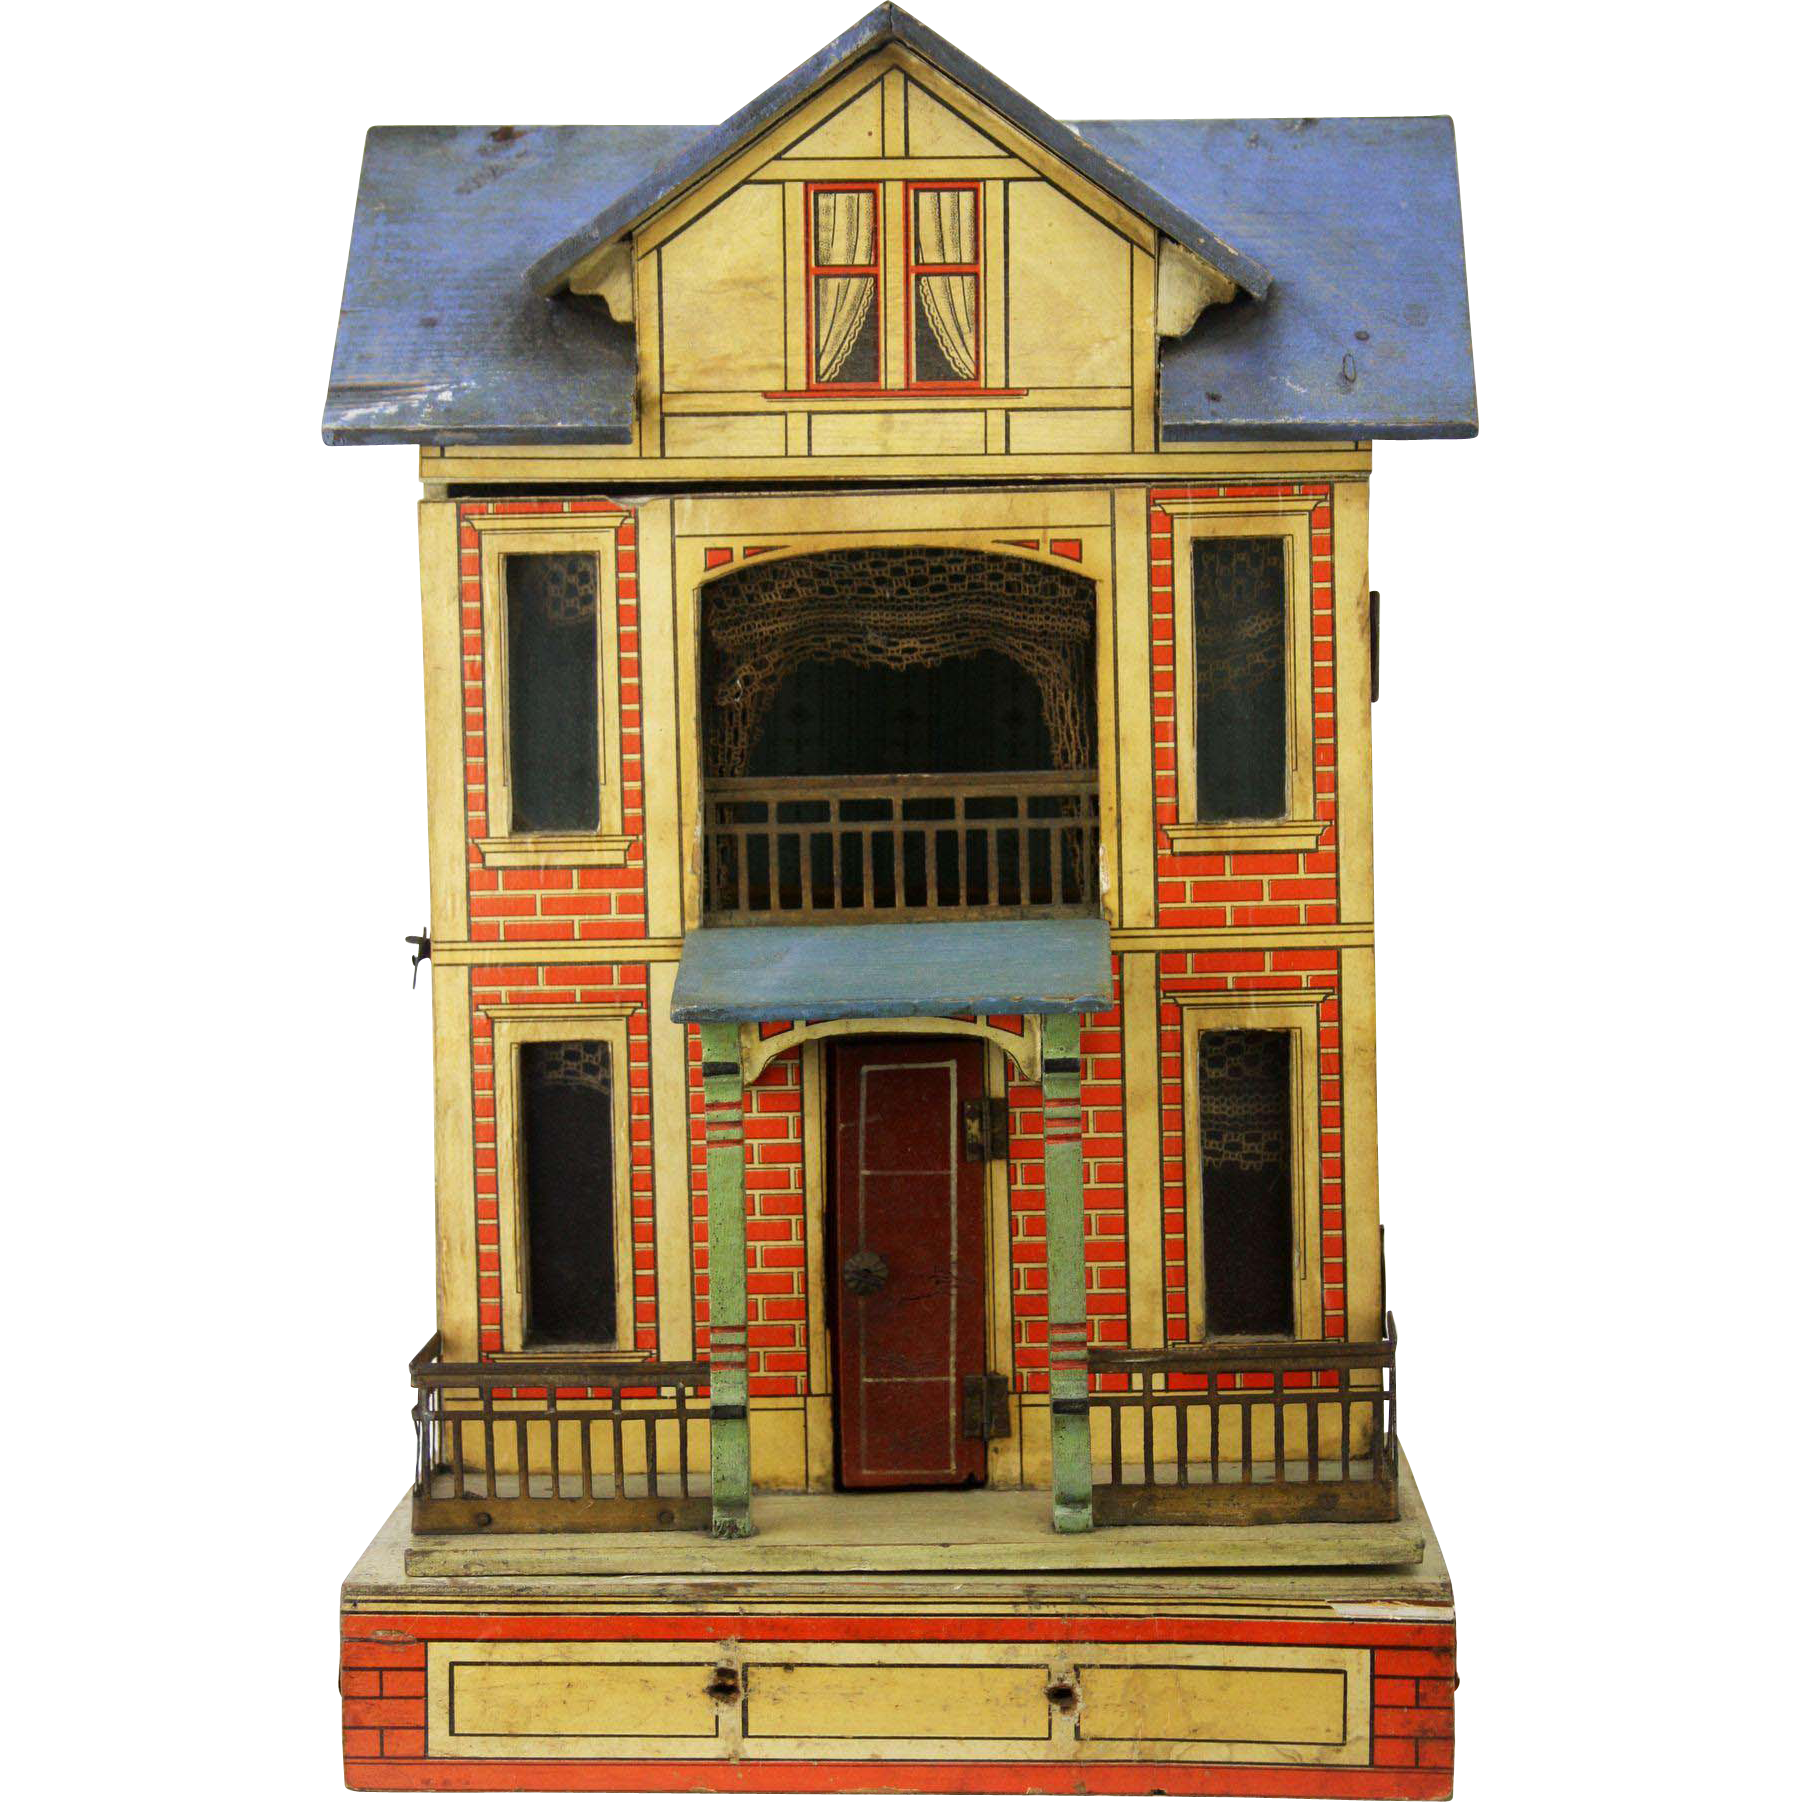 antique doll house - 28 images - antique dollhouse doll ...